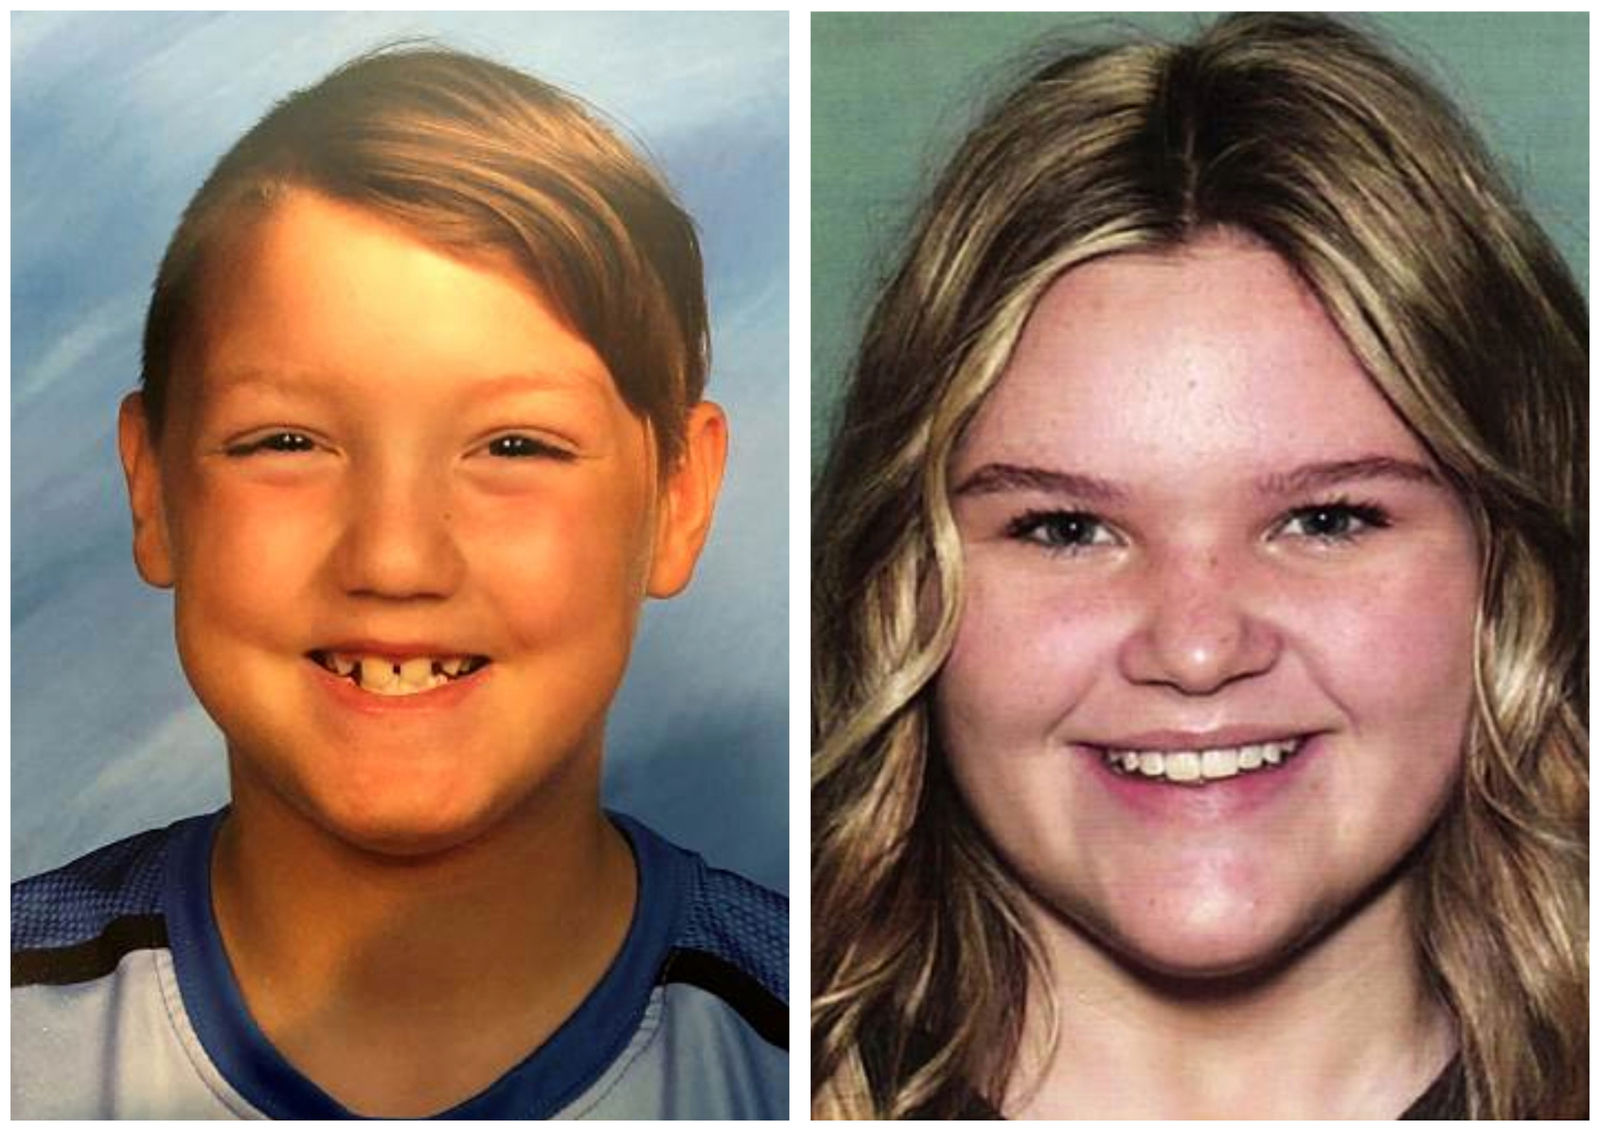 FILE - This combination of undated file photos released by the National Center for Missing & Exploited Children show missing children Joshua Vallow, left, and Tylee Ryan. (National Center for Missing & Exploited Children via AP, File)